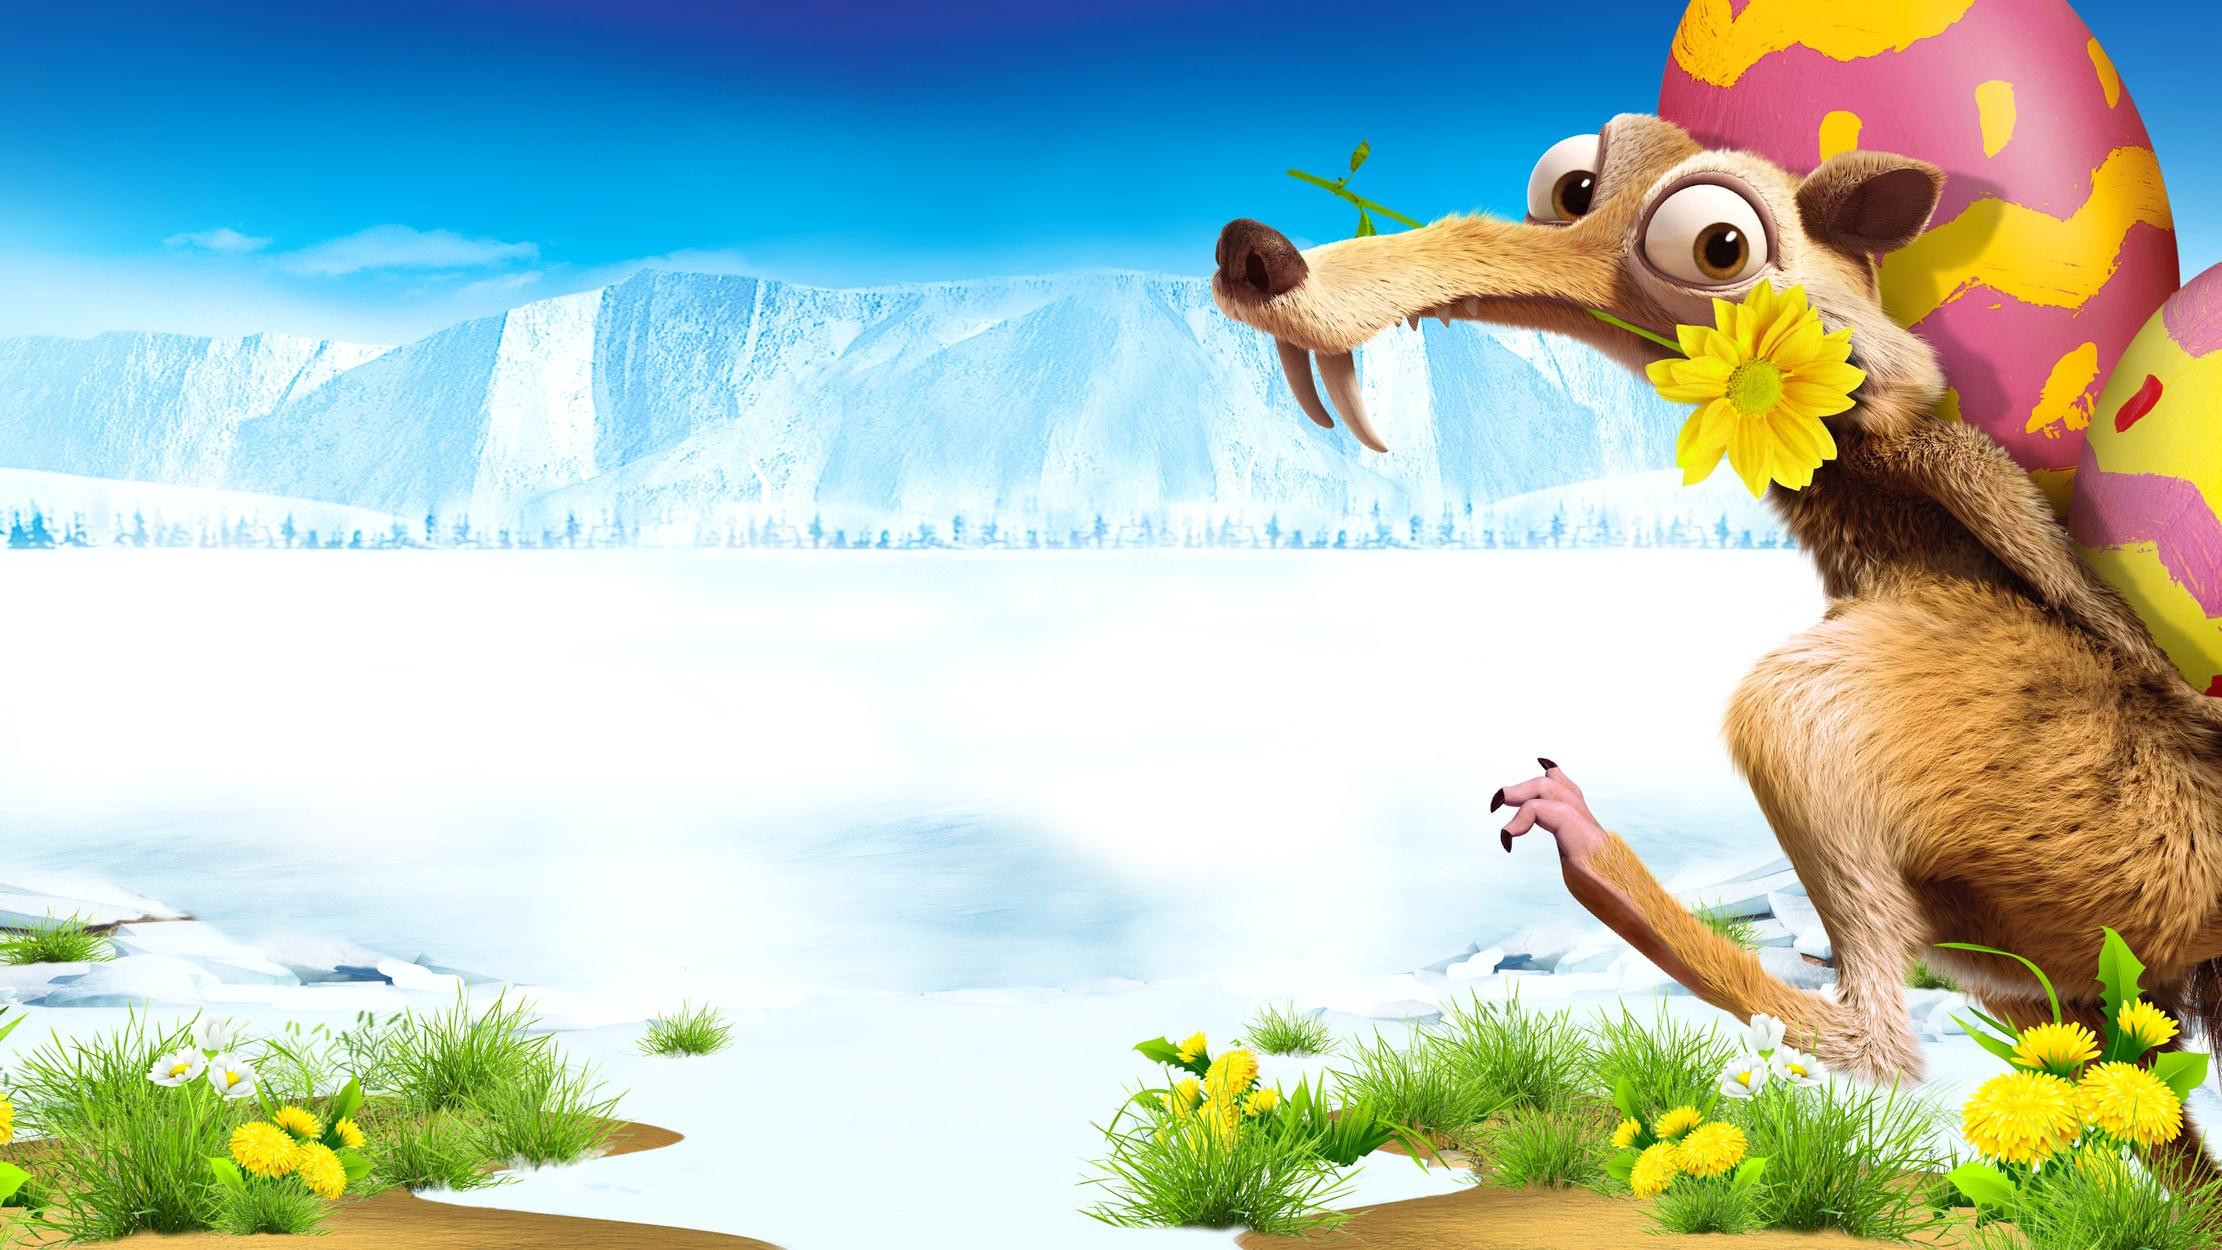 Ice Age: The Great Egg-Scapade seriesDetail